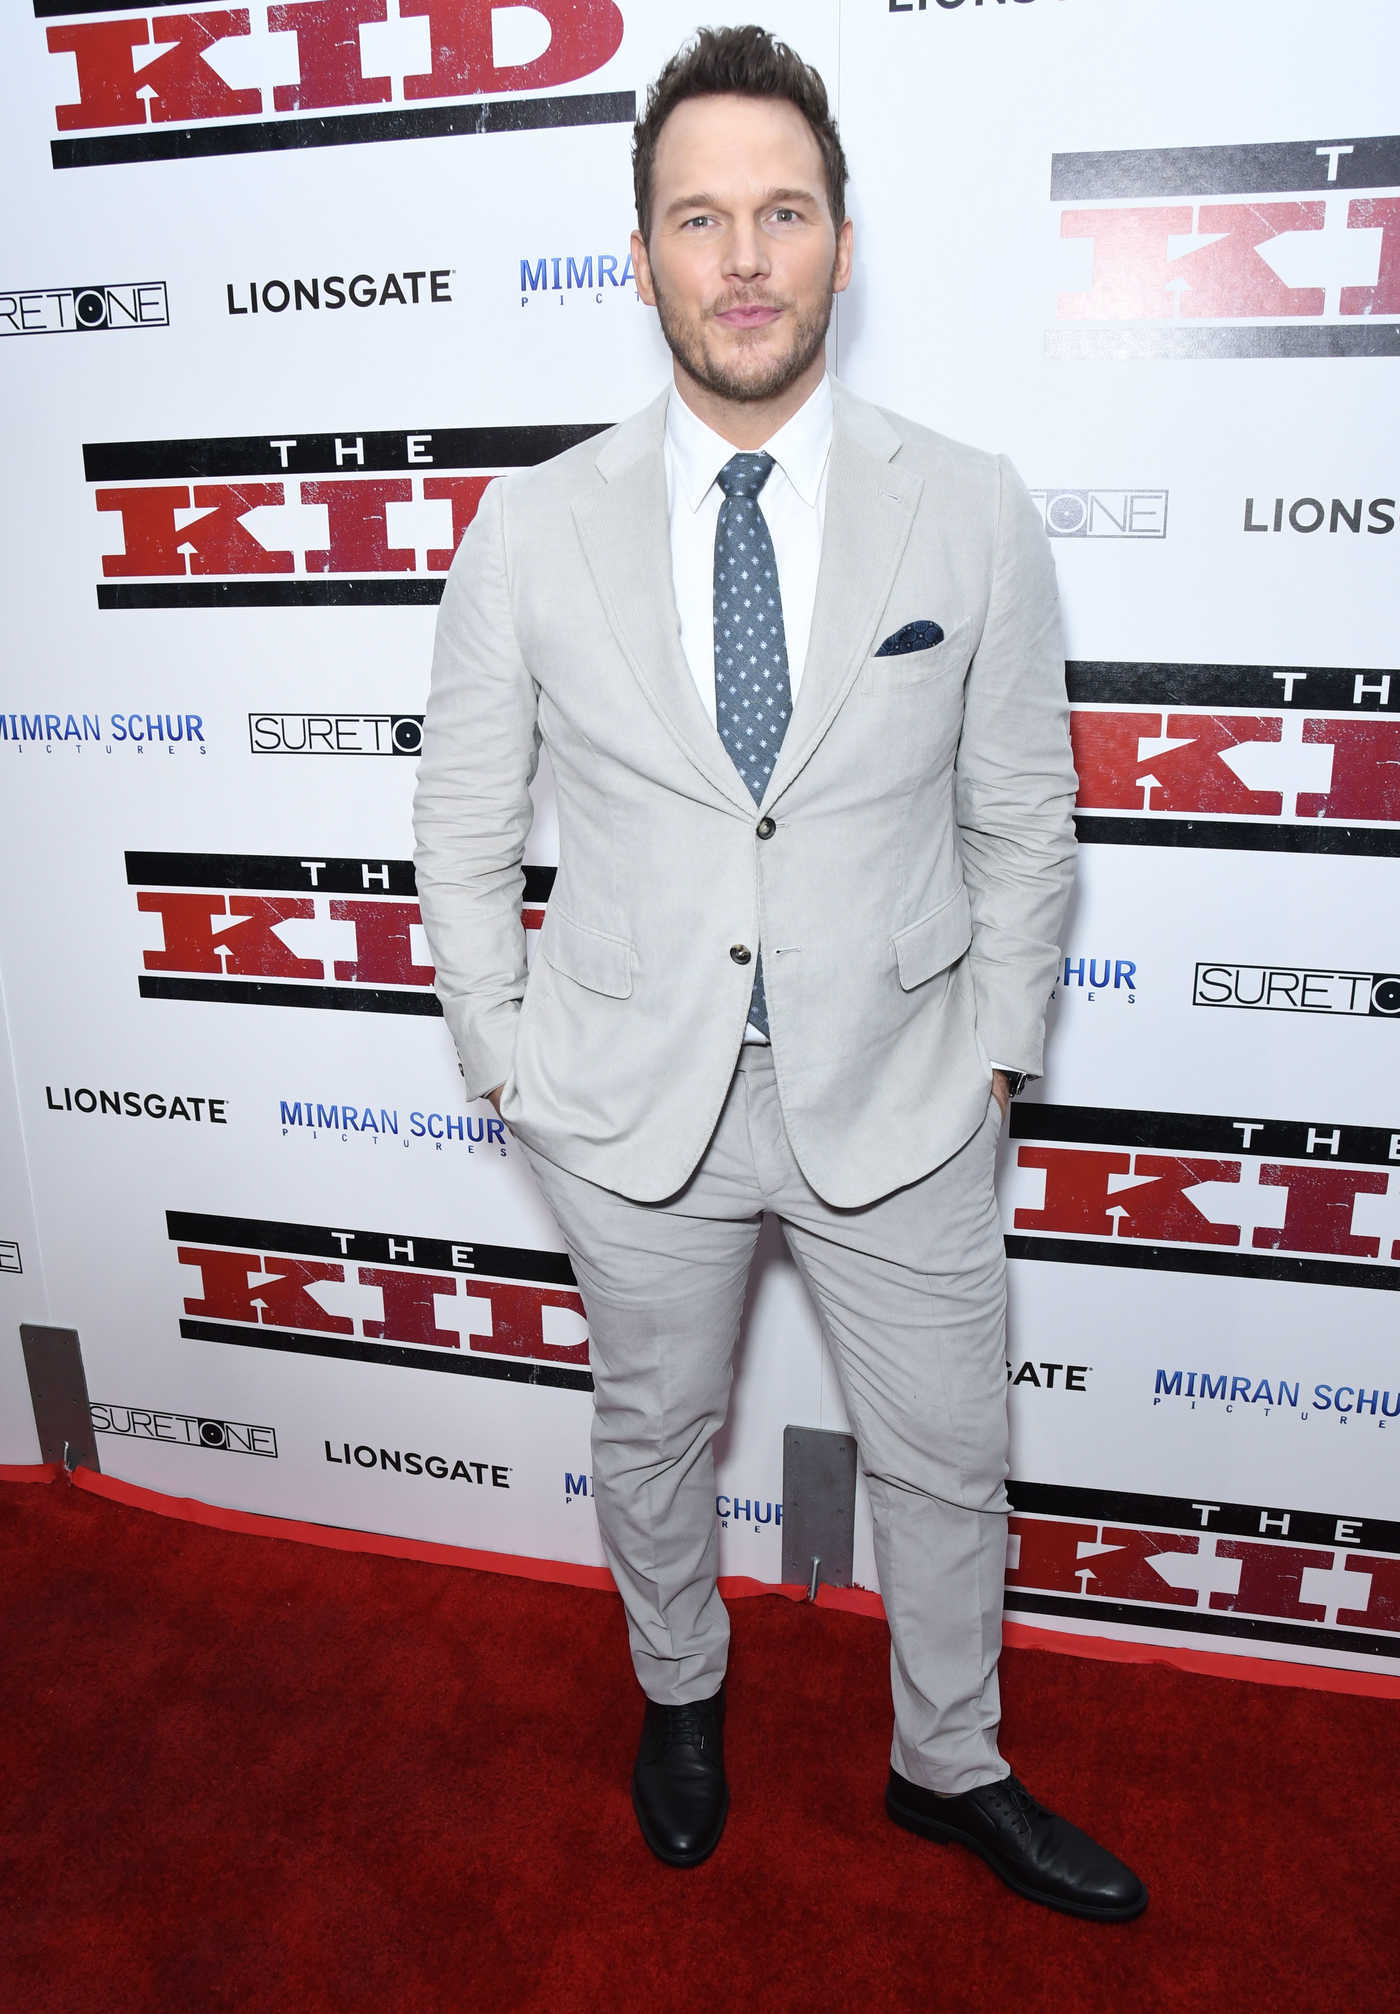 Chris Pratt Attends The Kid Premiere in Los Angeles 03/06/2019